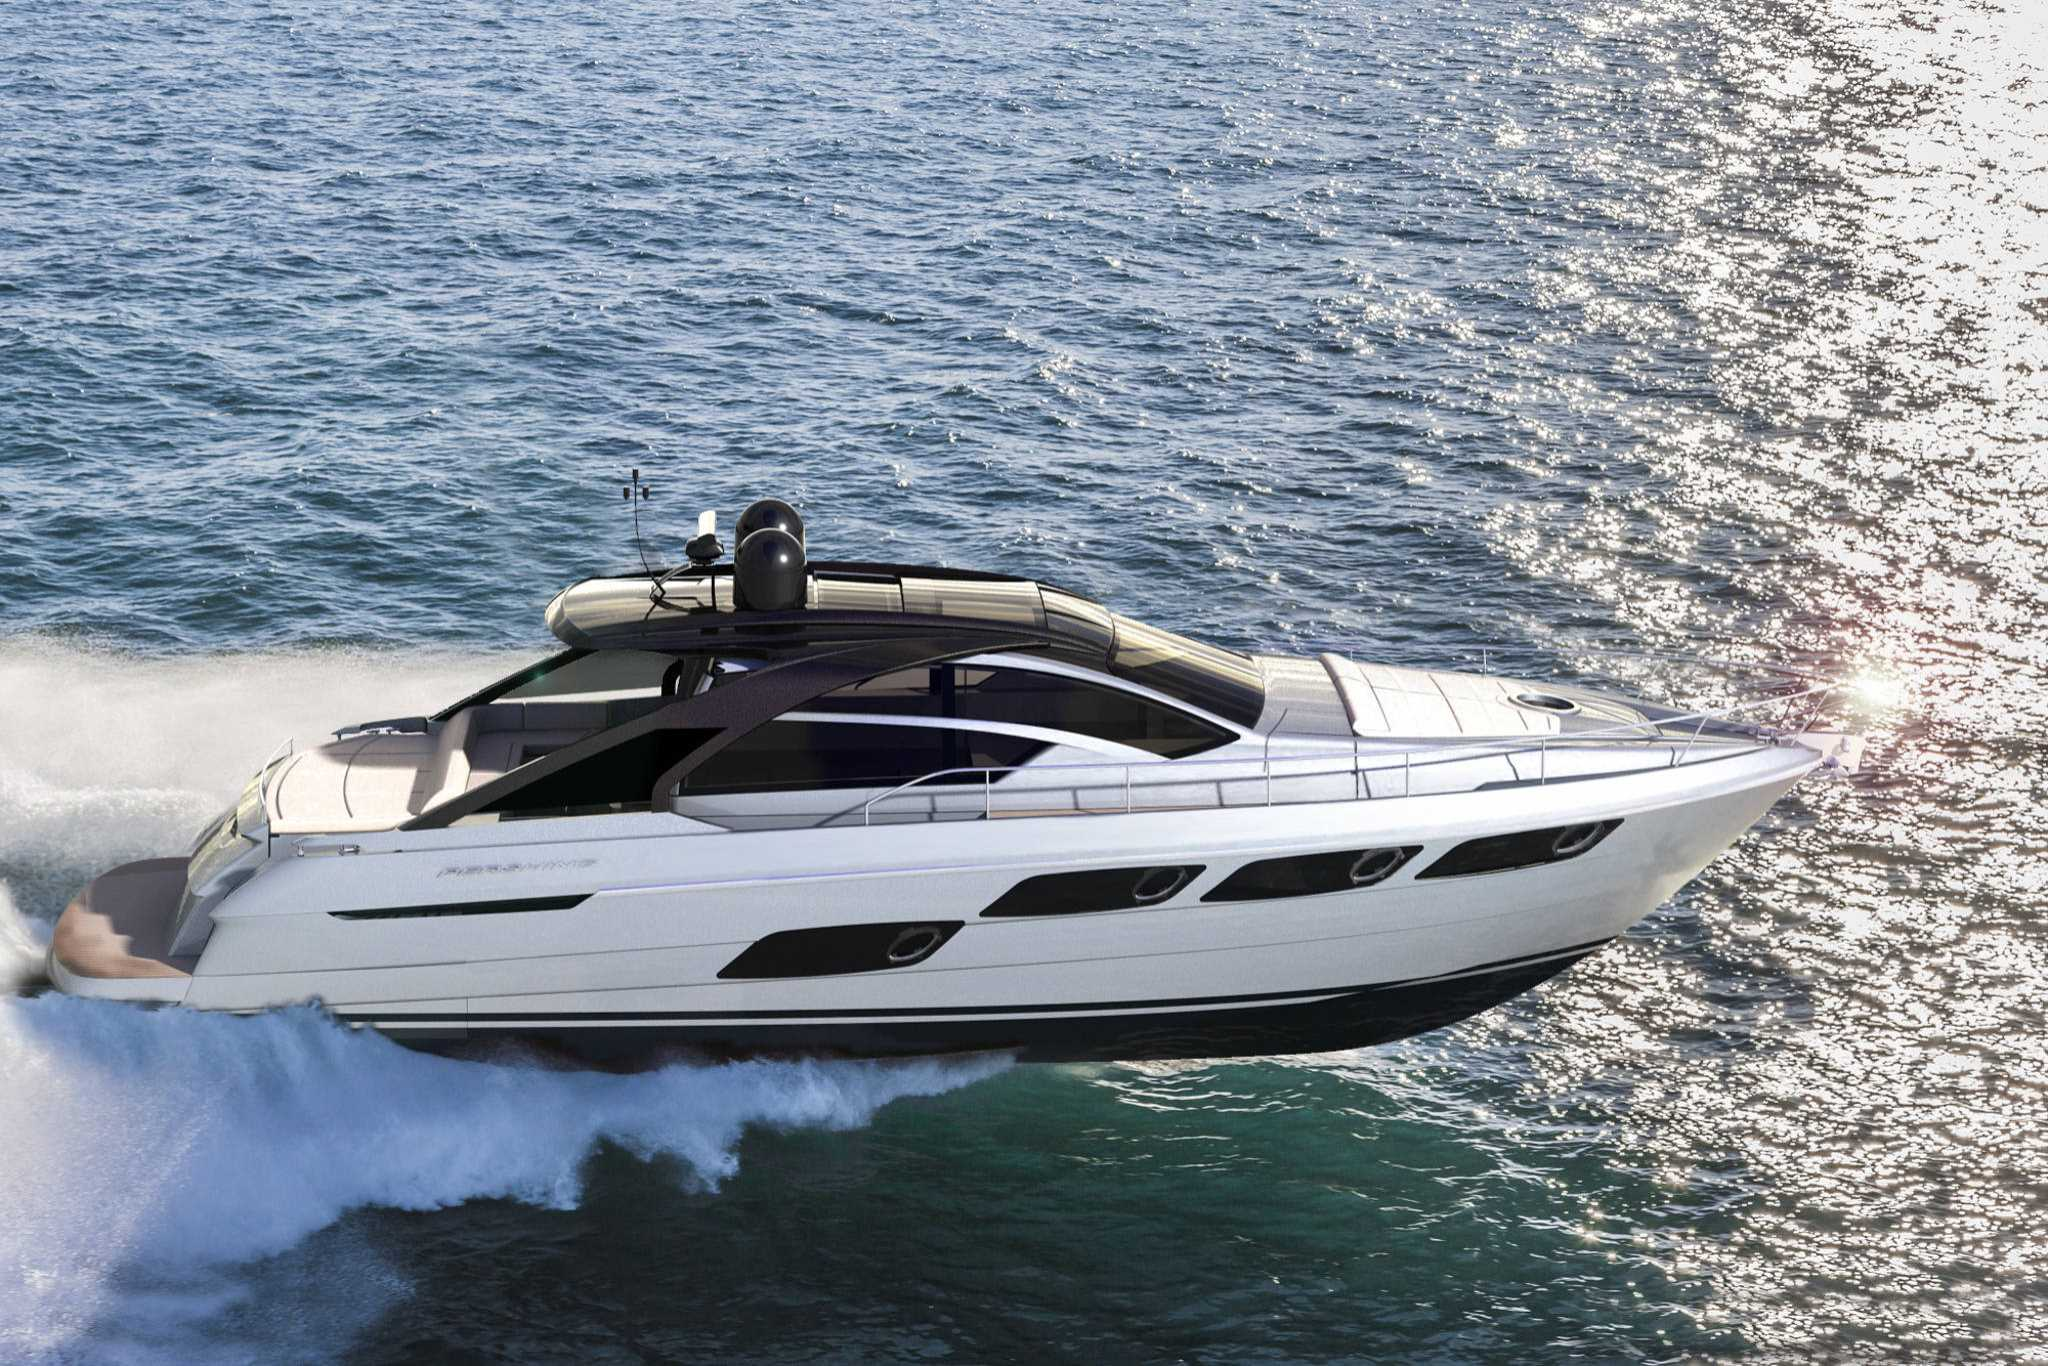 The new Pershing 5X is already a success. image